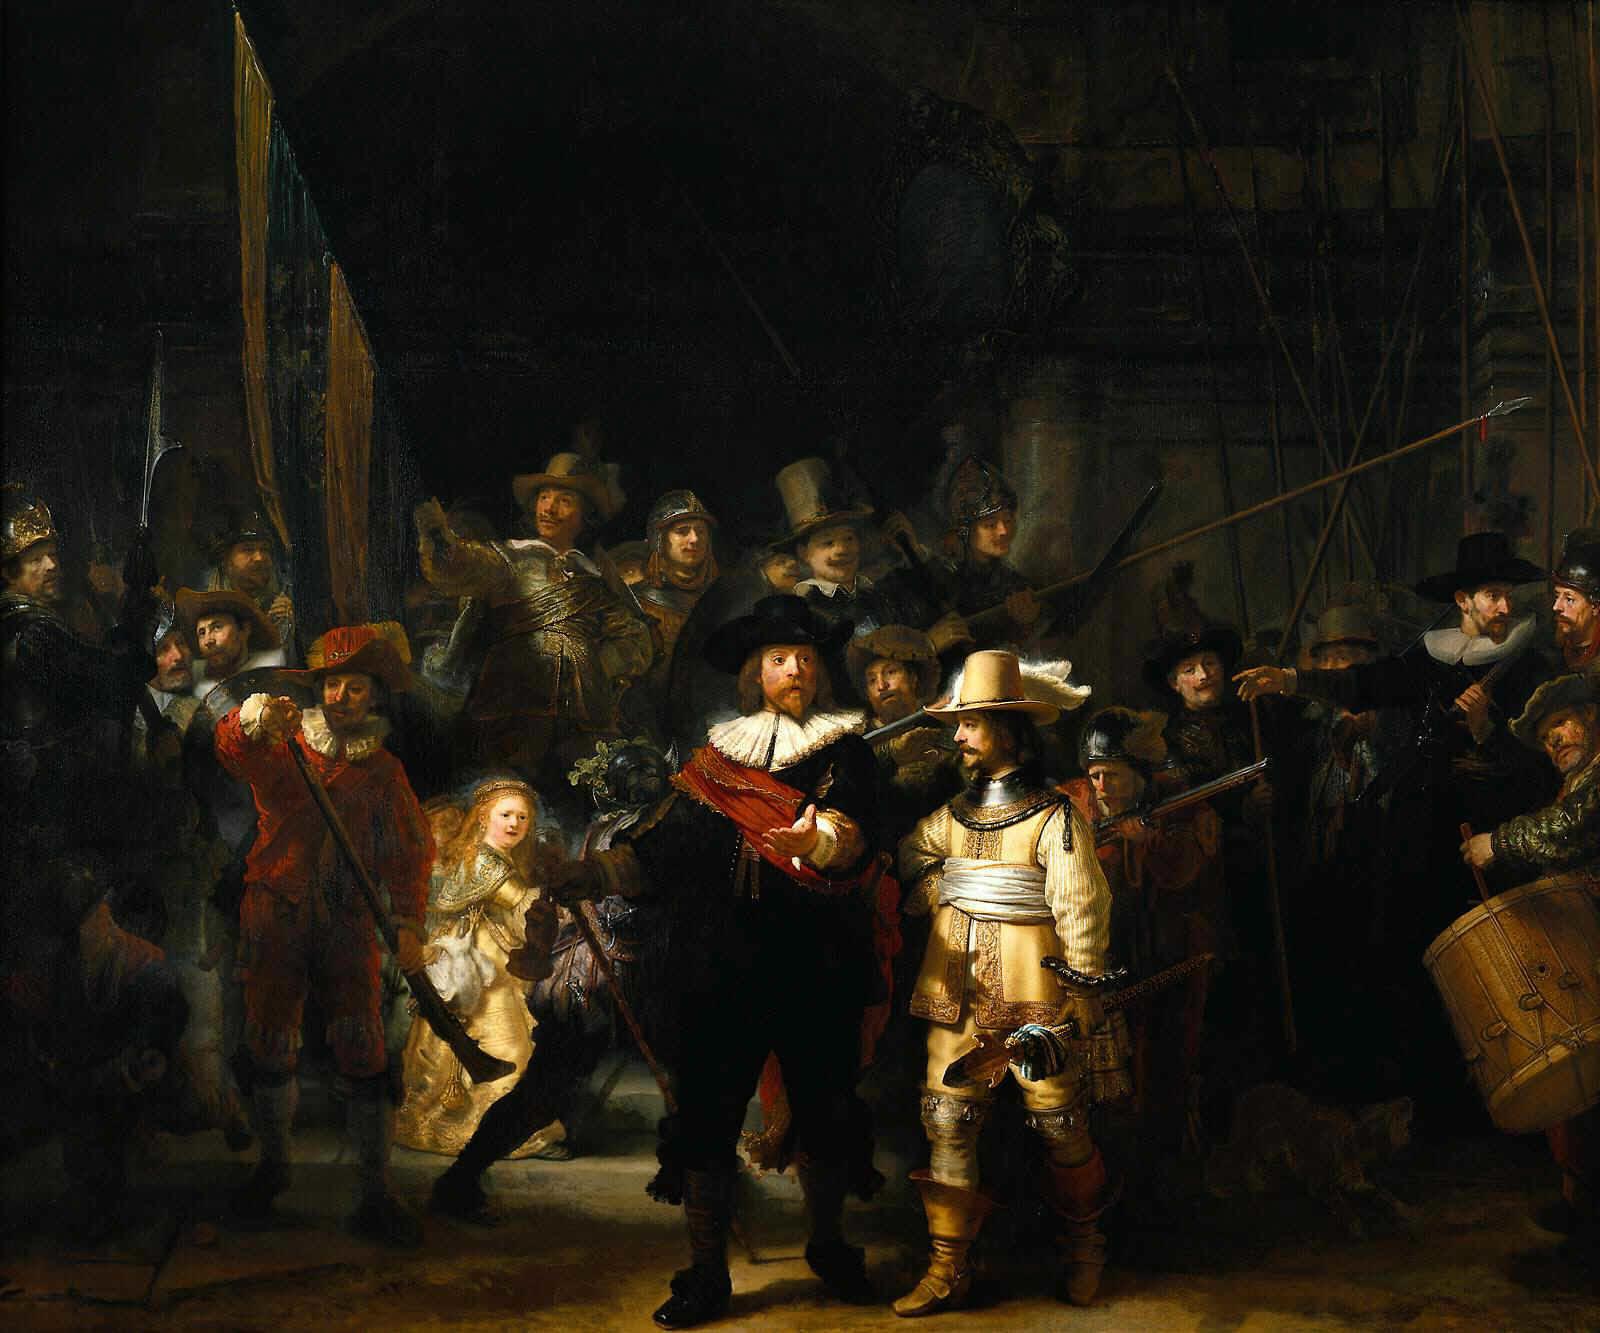 introdrawingjoy: Rembrandt- The Night Watch